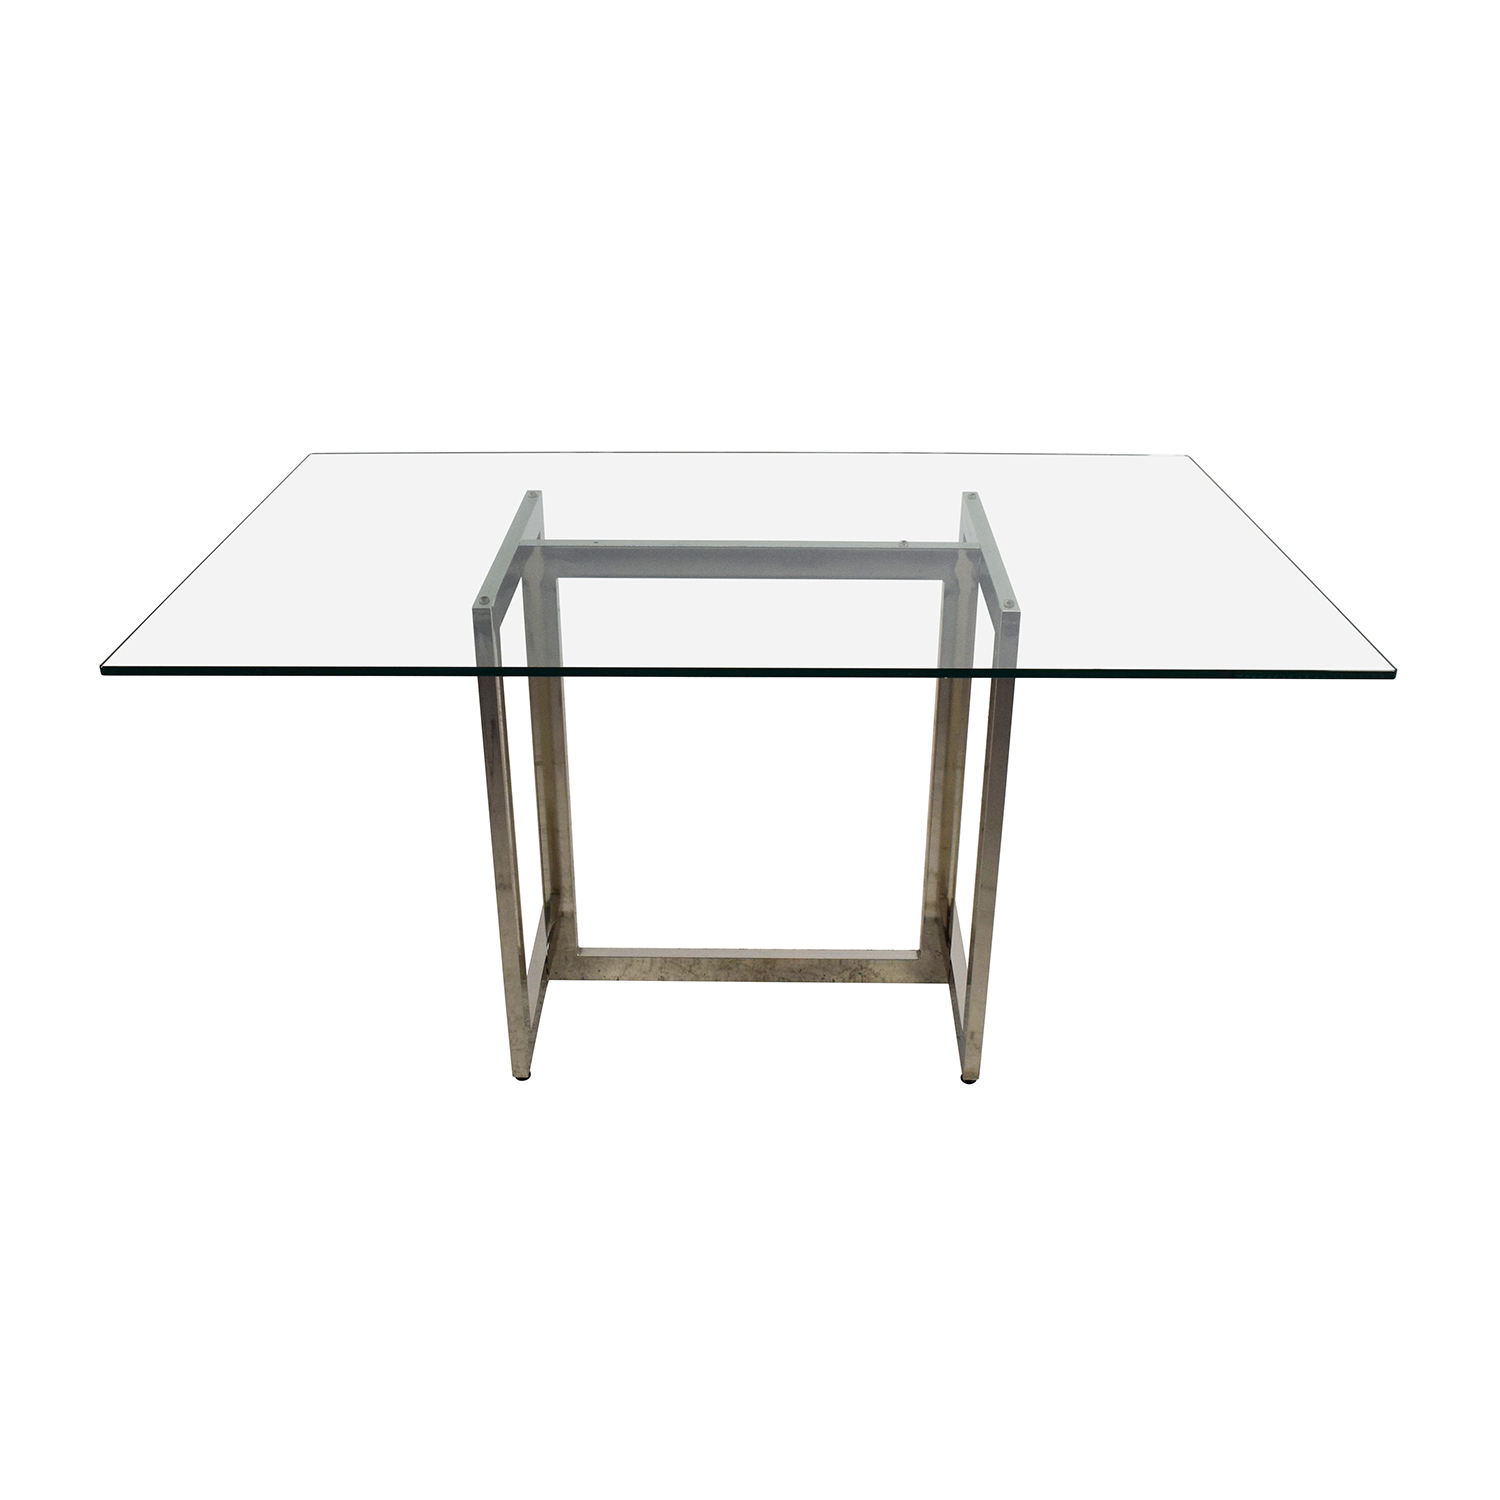 West Elm Hicks Glass Top Dining Table / Dinner Tables